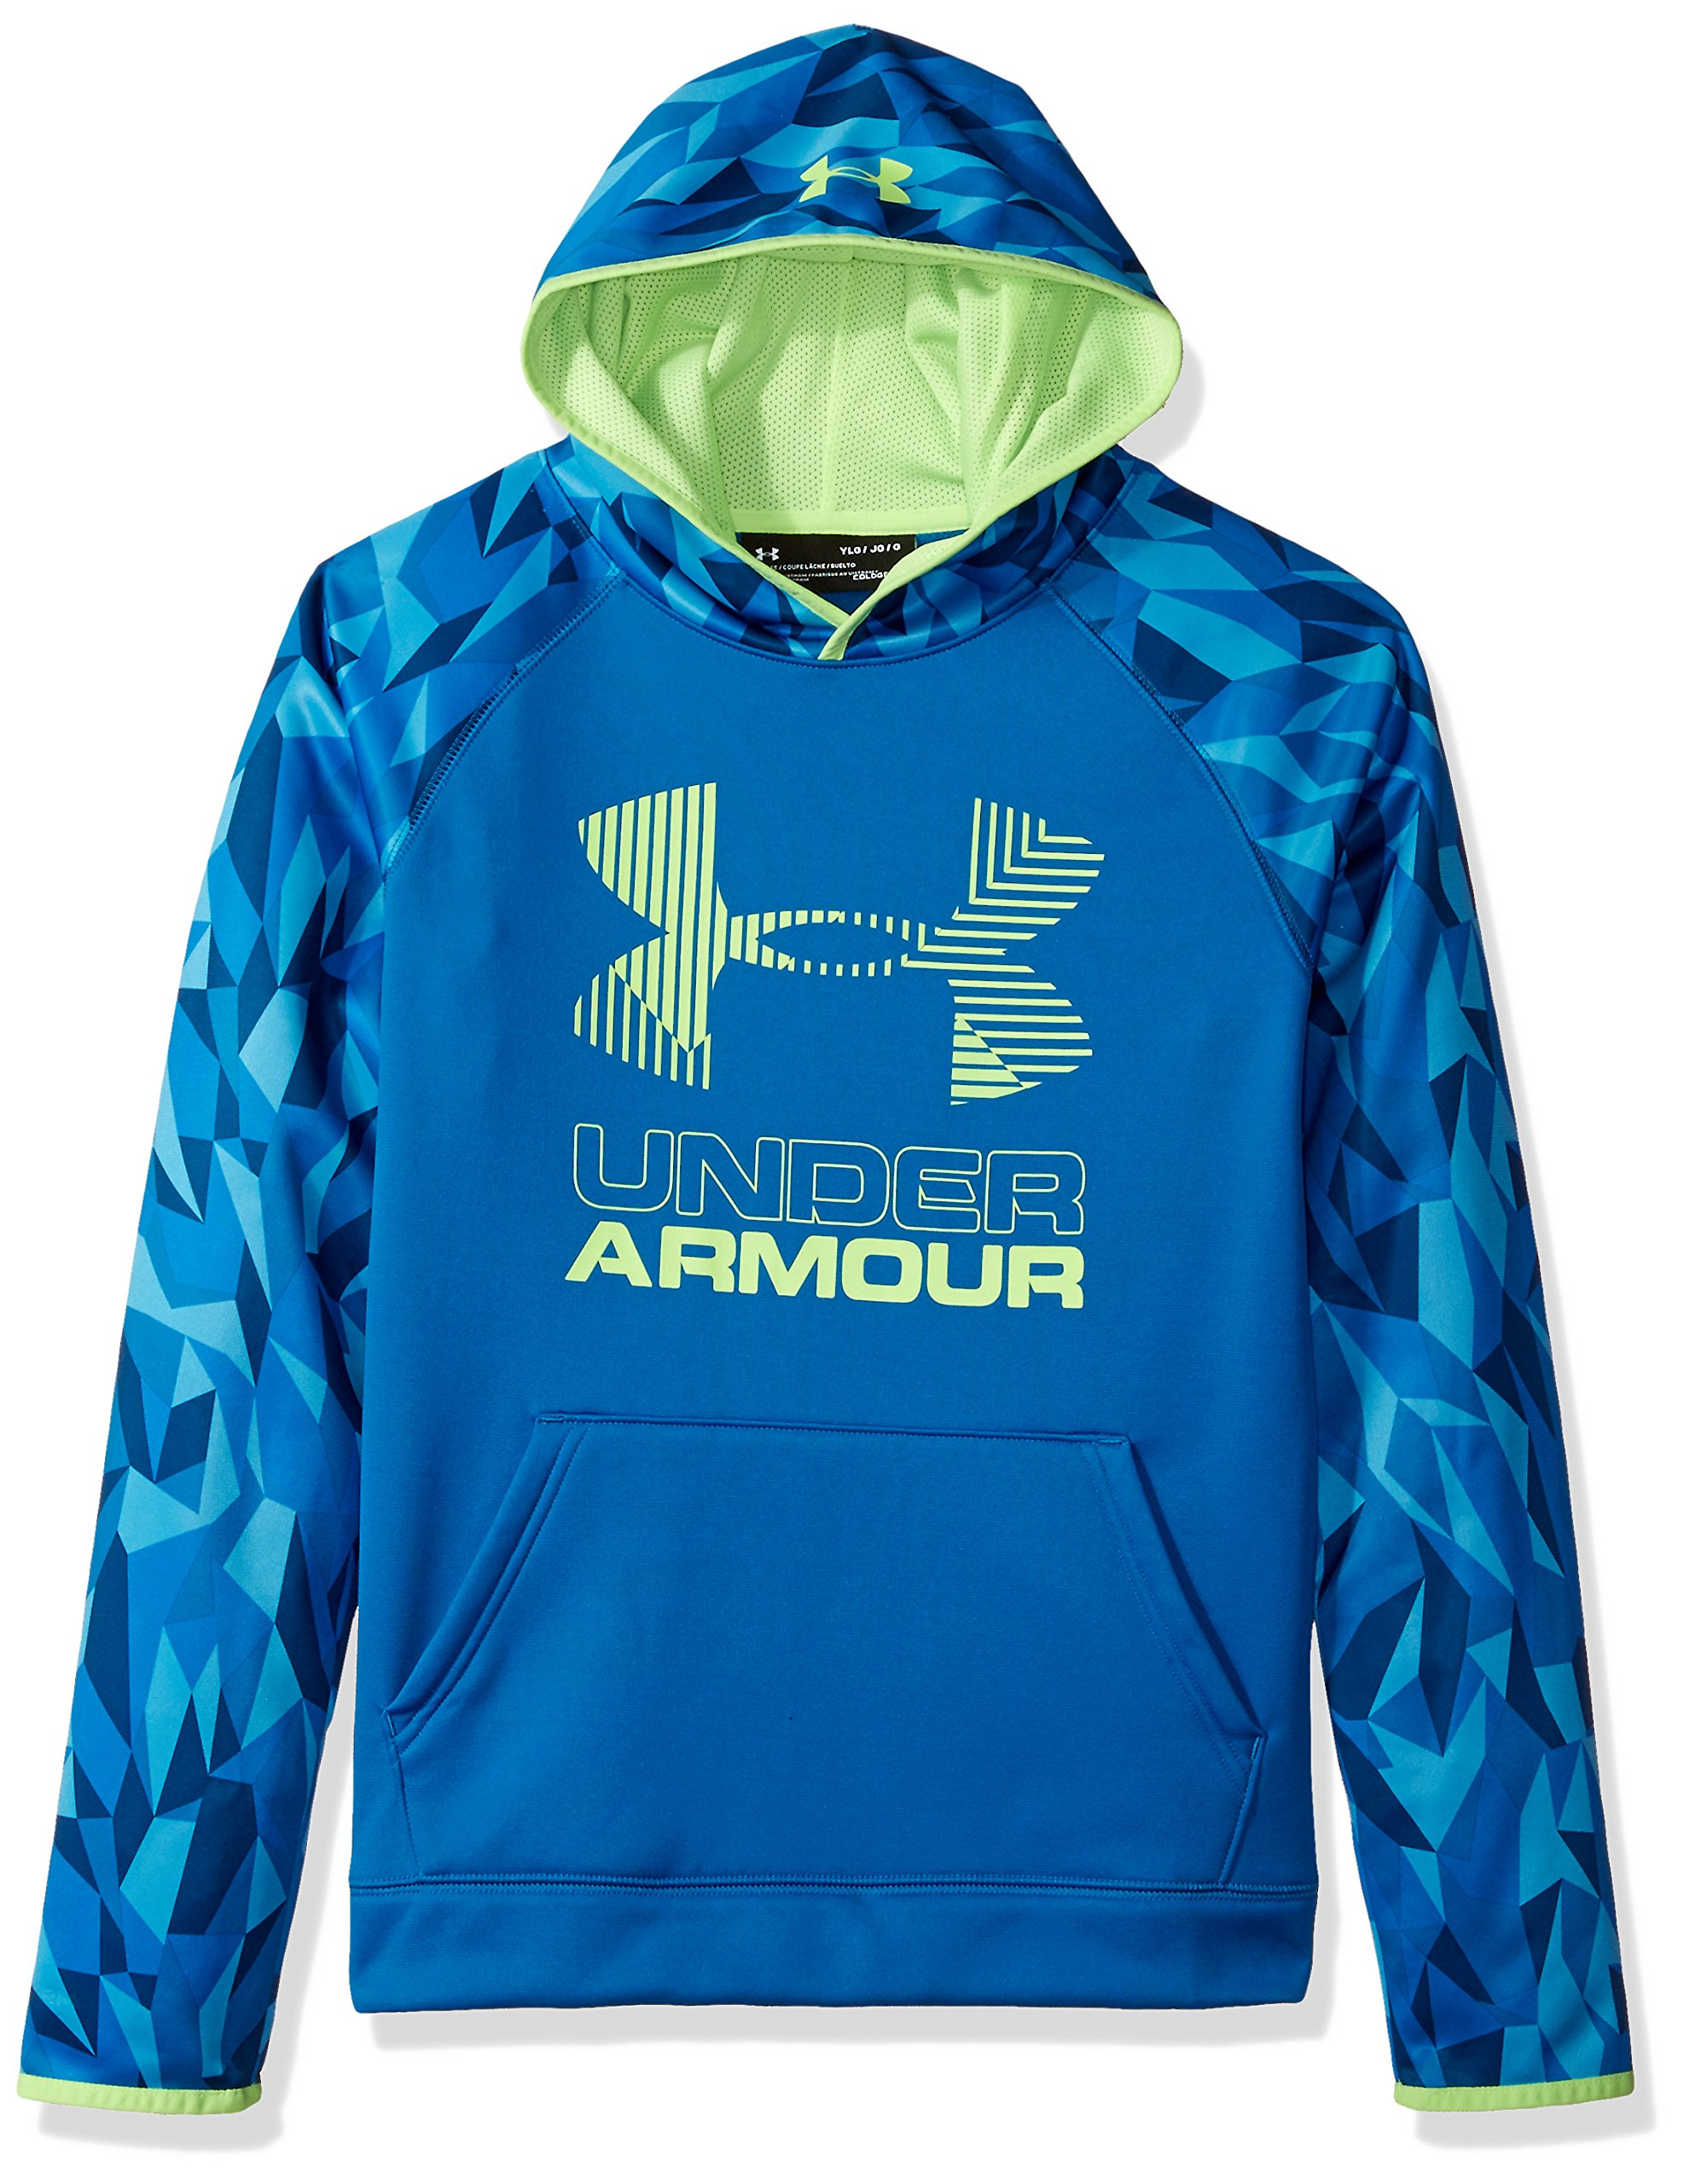 Under Armour Boys' Armour Fleece Printed Big Logo Hoodie, Cruise Blue /Quirky Lime, Youth X-Small